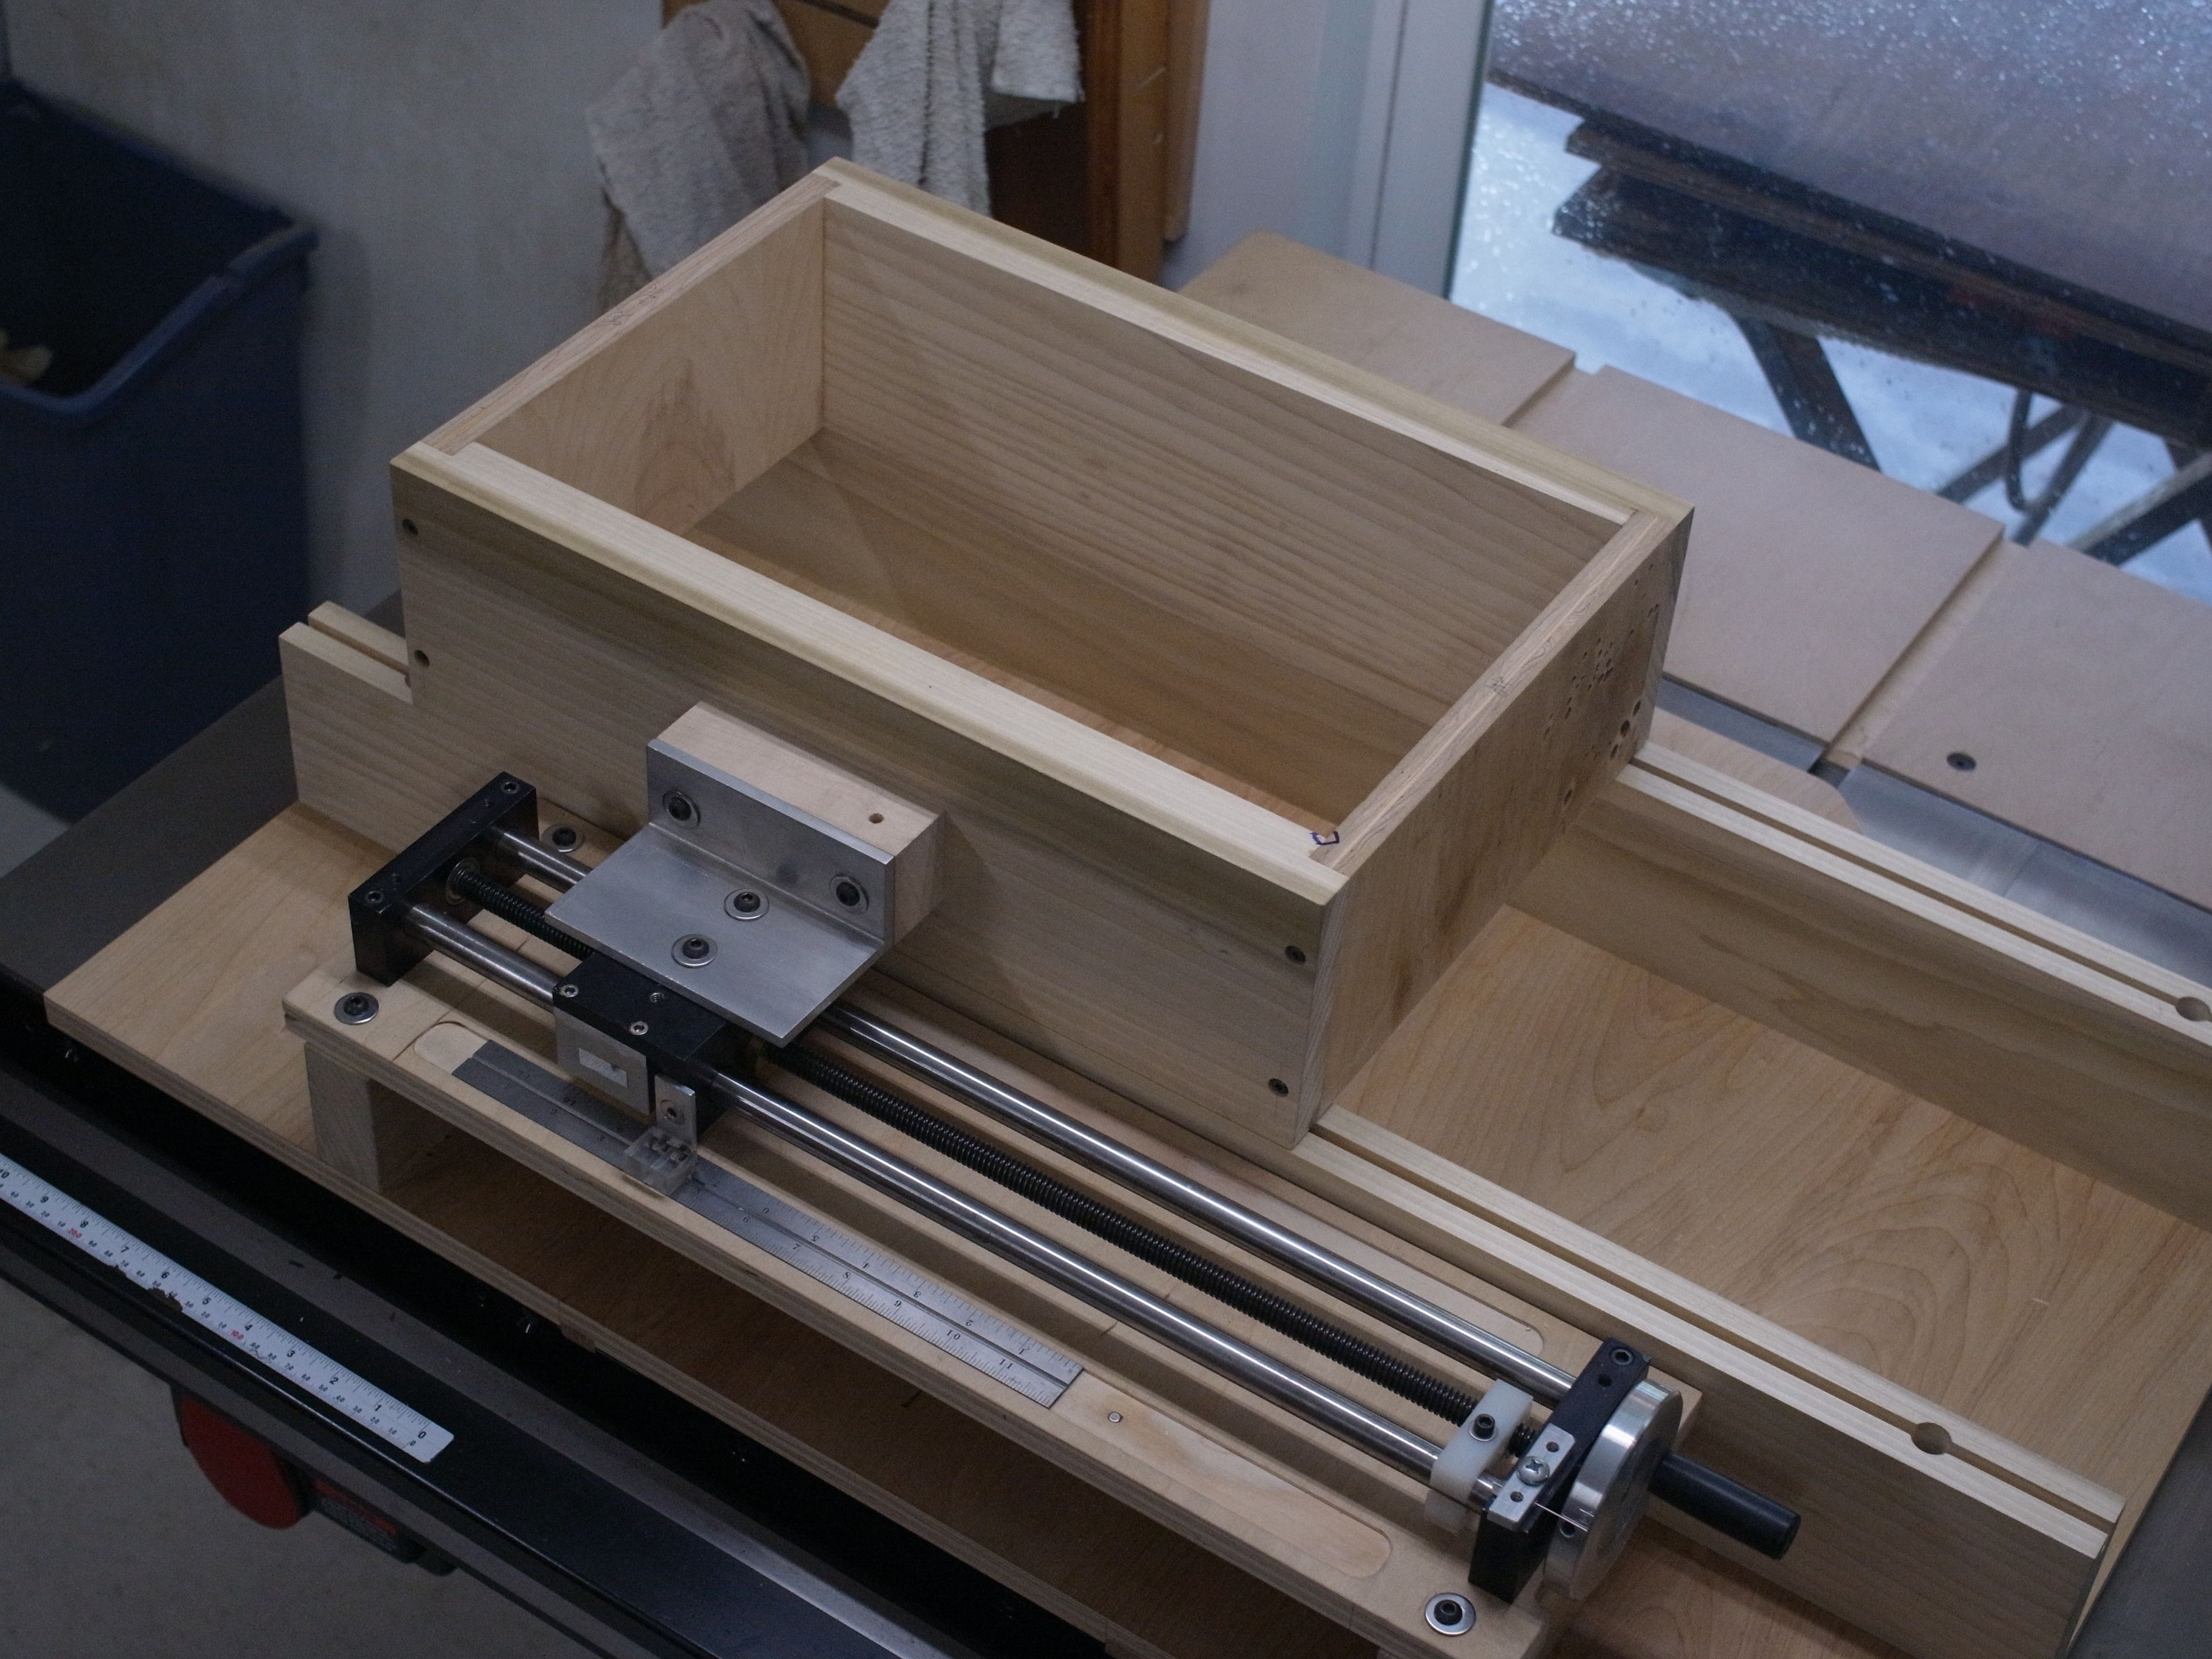 table-saw-x-joint-jig.jpg (JPEG Image, 3776×2832 pixels) - Scaled (32%)